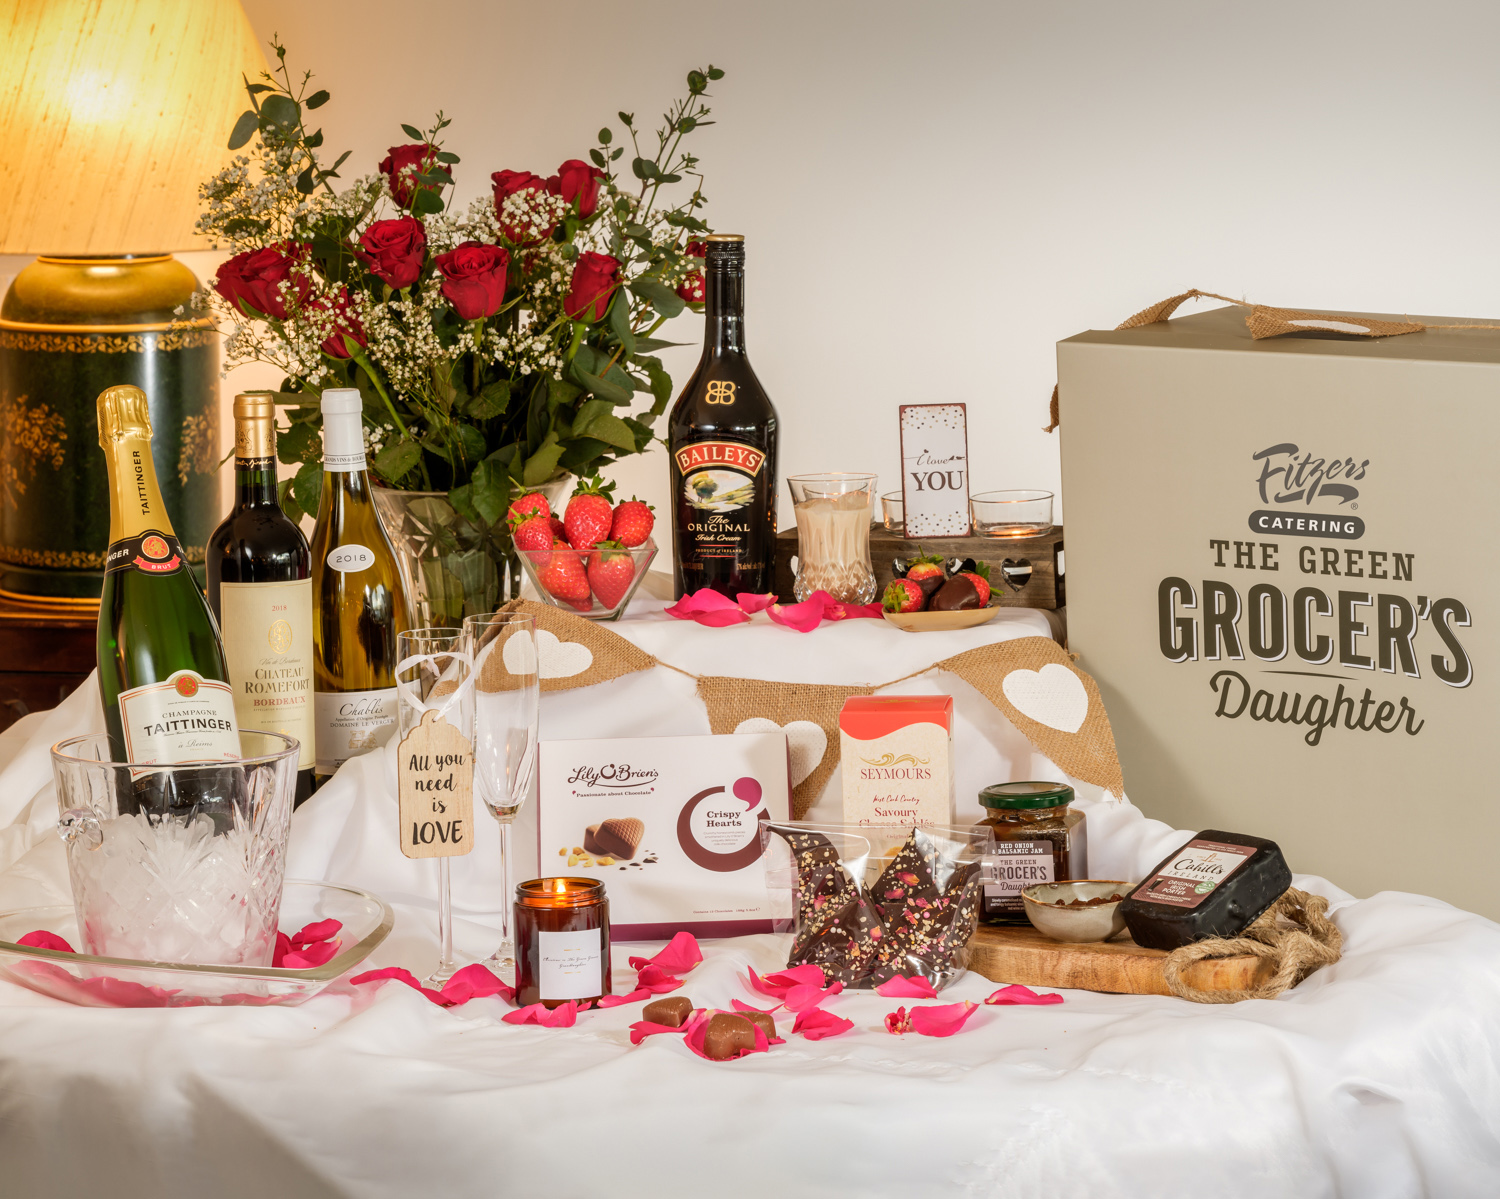 Green Grocer's Daughter Love Is All You Need Luxury Valentine's Hamper €250.00  Available from www.greengrocersdaughter.com call 01-4663005  For further information please contact Mari O'Leary  016789888 / marioleary@olearypr.ie